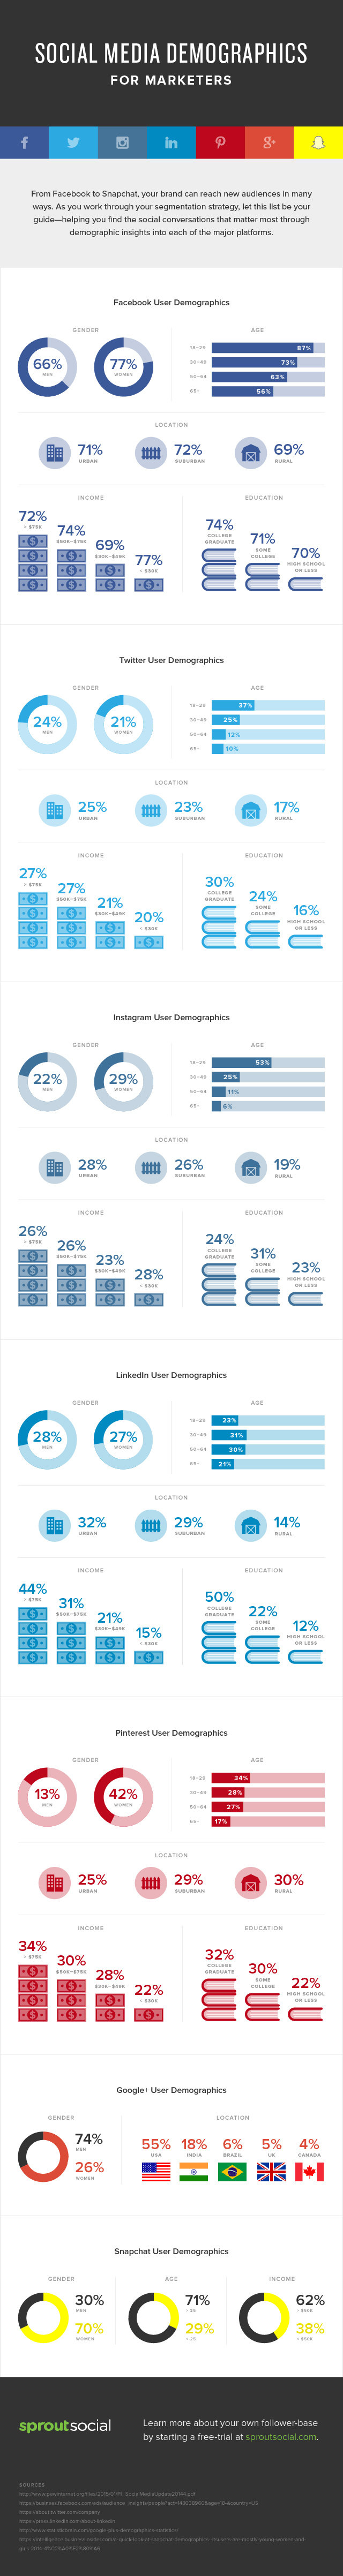 What Social Media Platform Is Right For You? These Stats Will Tell You #Infographic